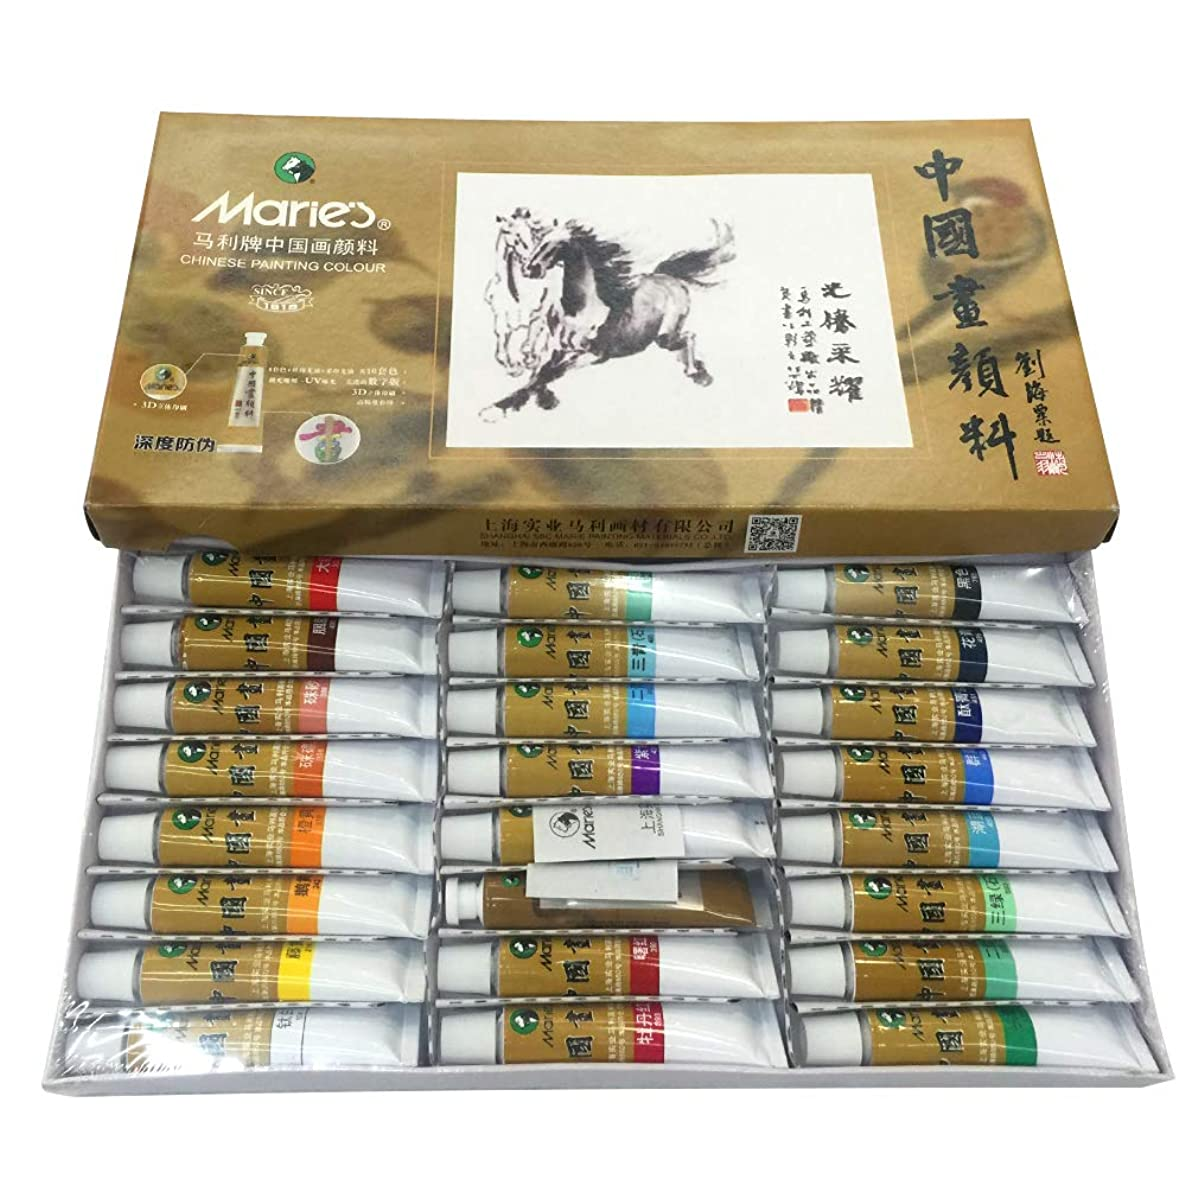 YL003 Hmayart Marie's Chinese Painting Traditional Color Tubes Set 12 ml for Sumi-e Xieyi and Gongbi Painting (24colors12ml)